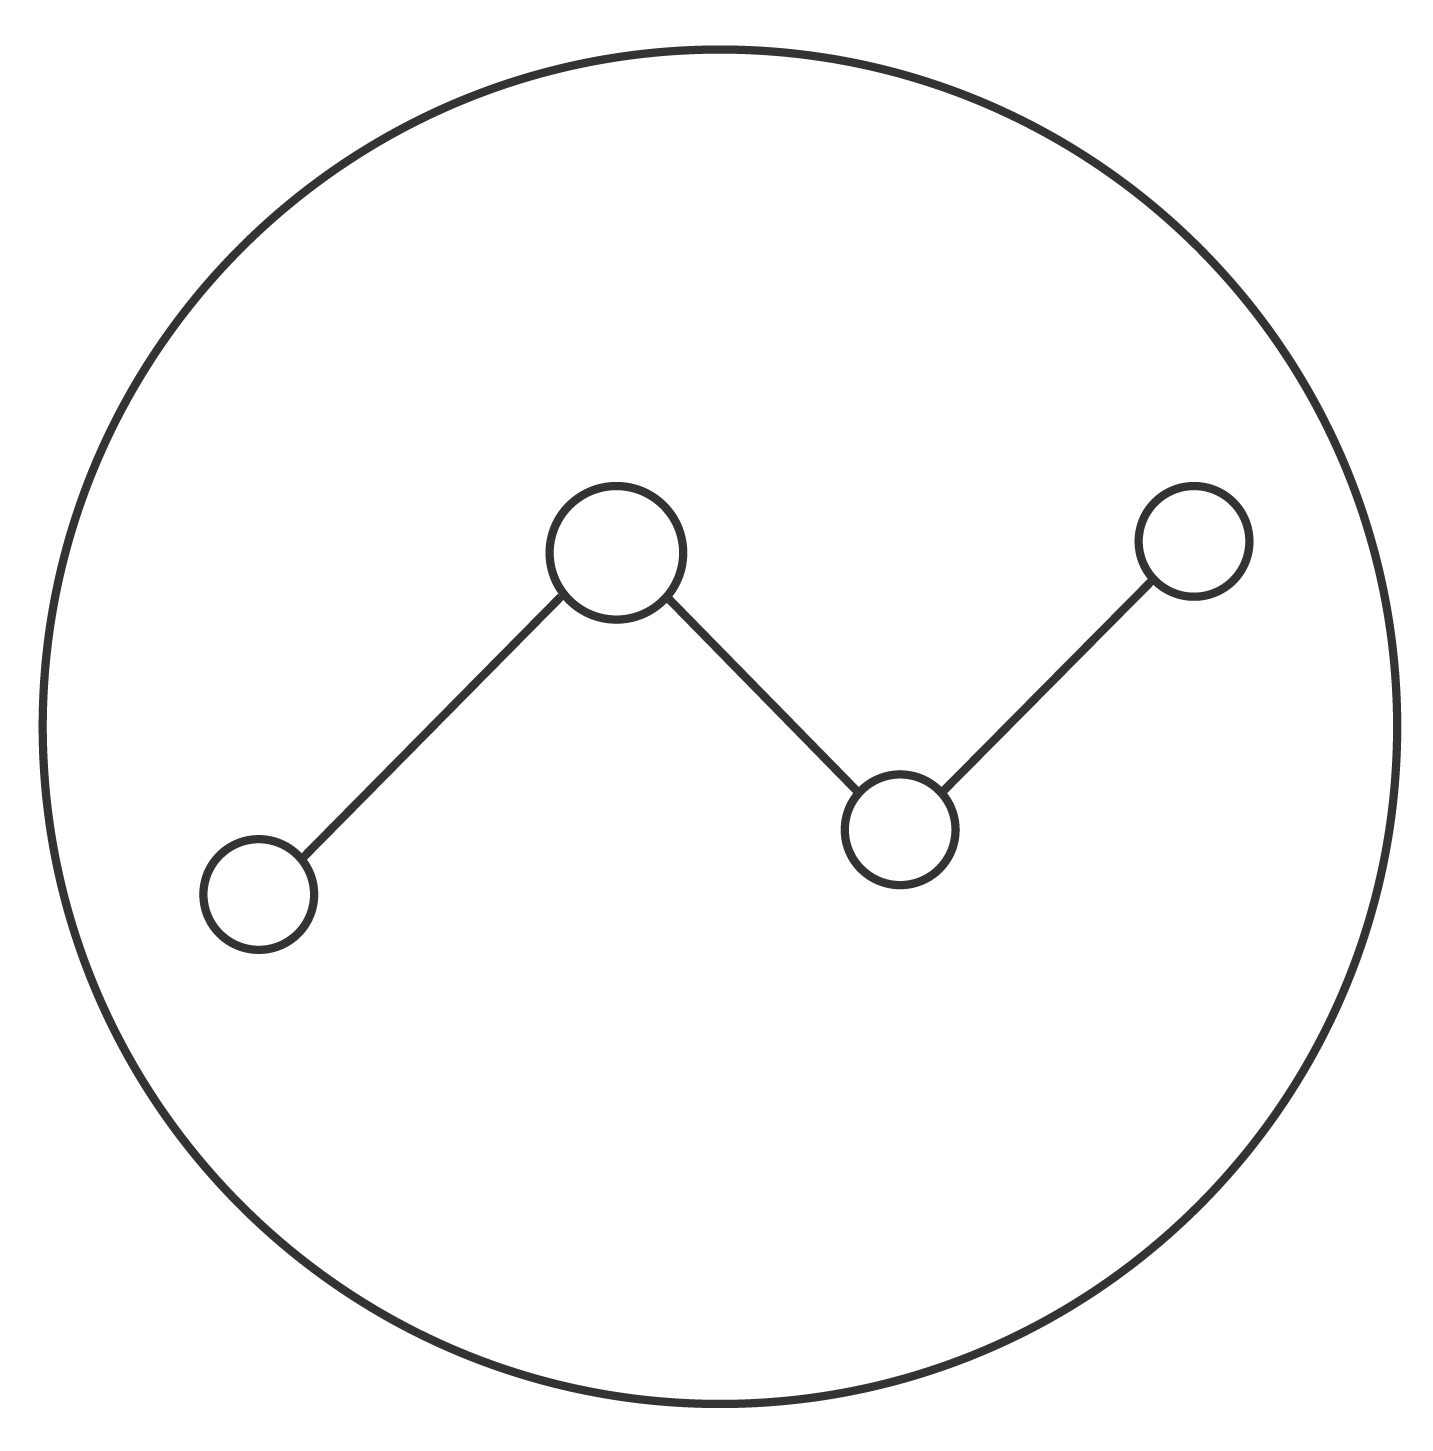 Benefits-Page-Icons-Black-04.png